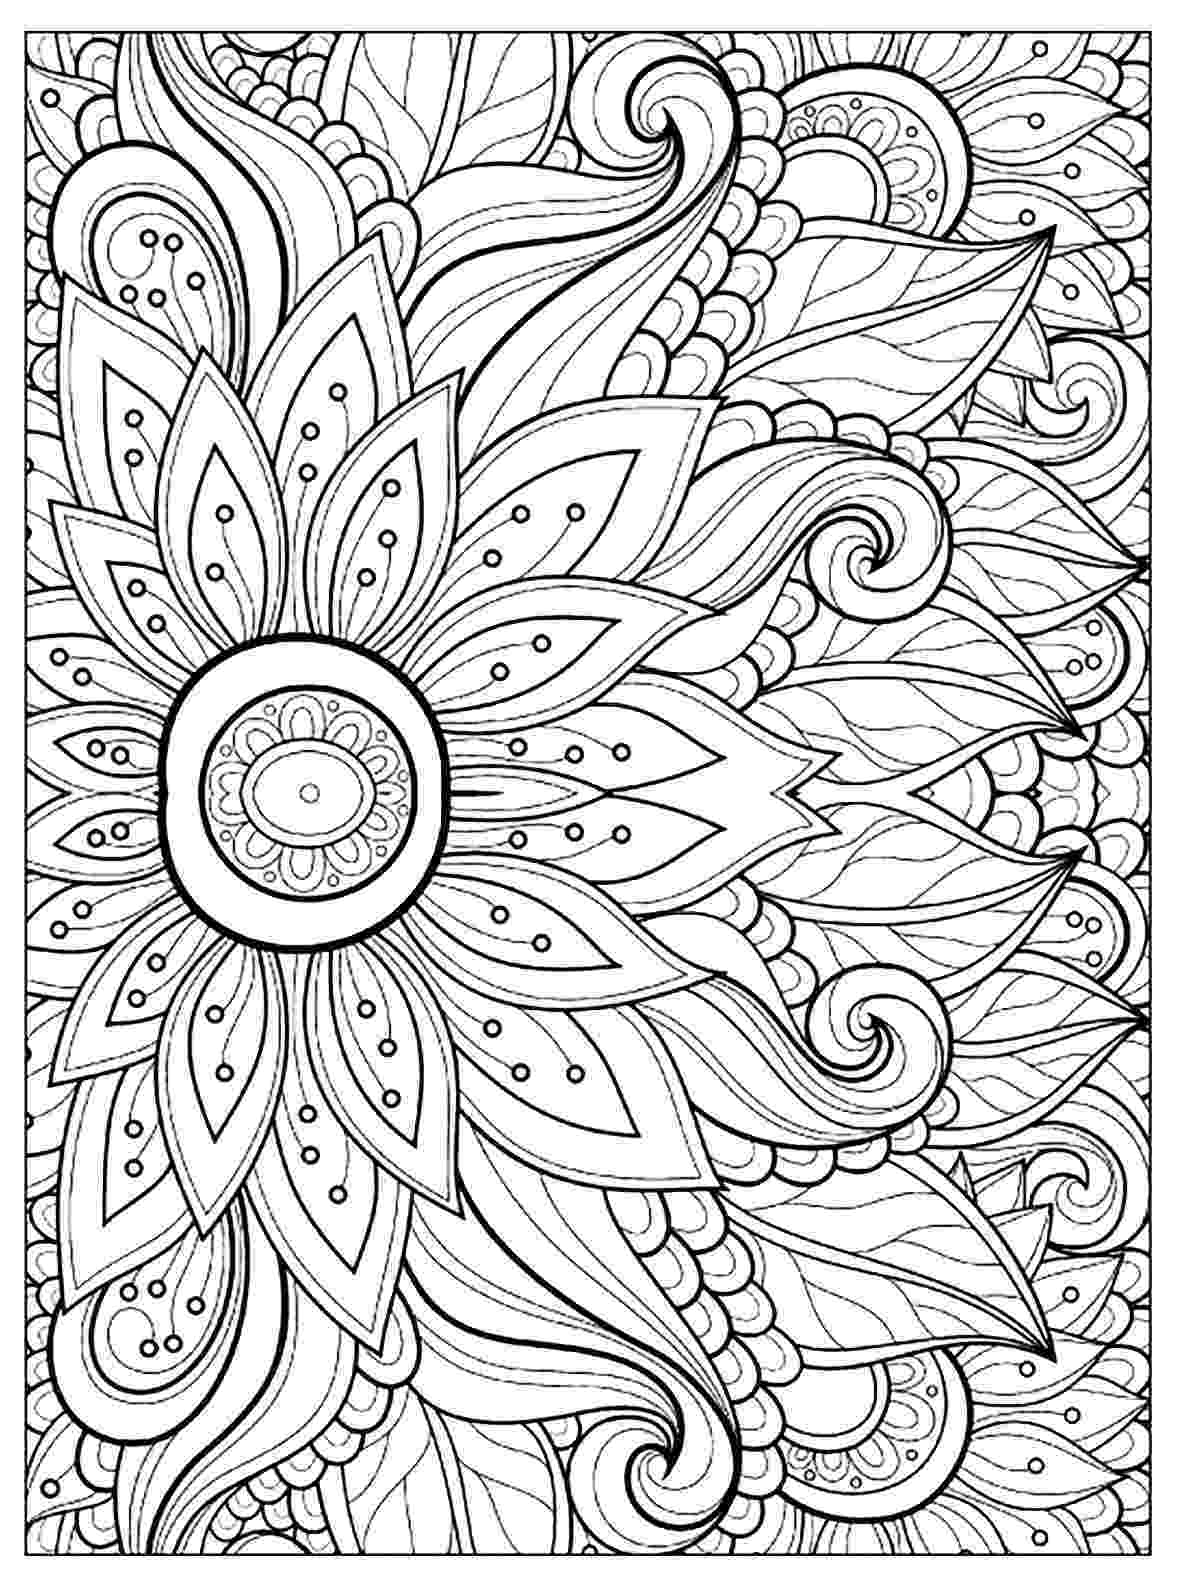 free printable coloring pages of flowers flowers to download for free flowers kids coloring pages pages of coloring free printable flowers